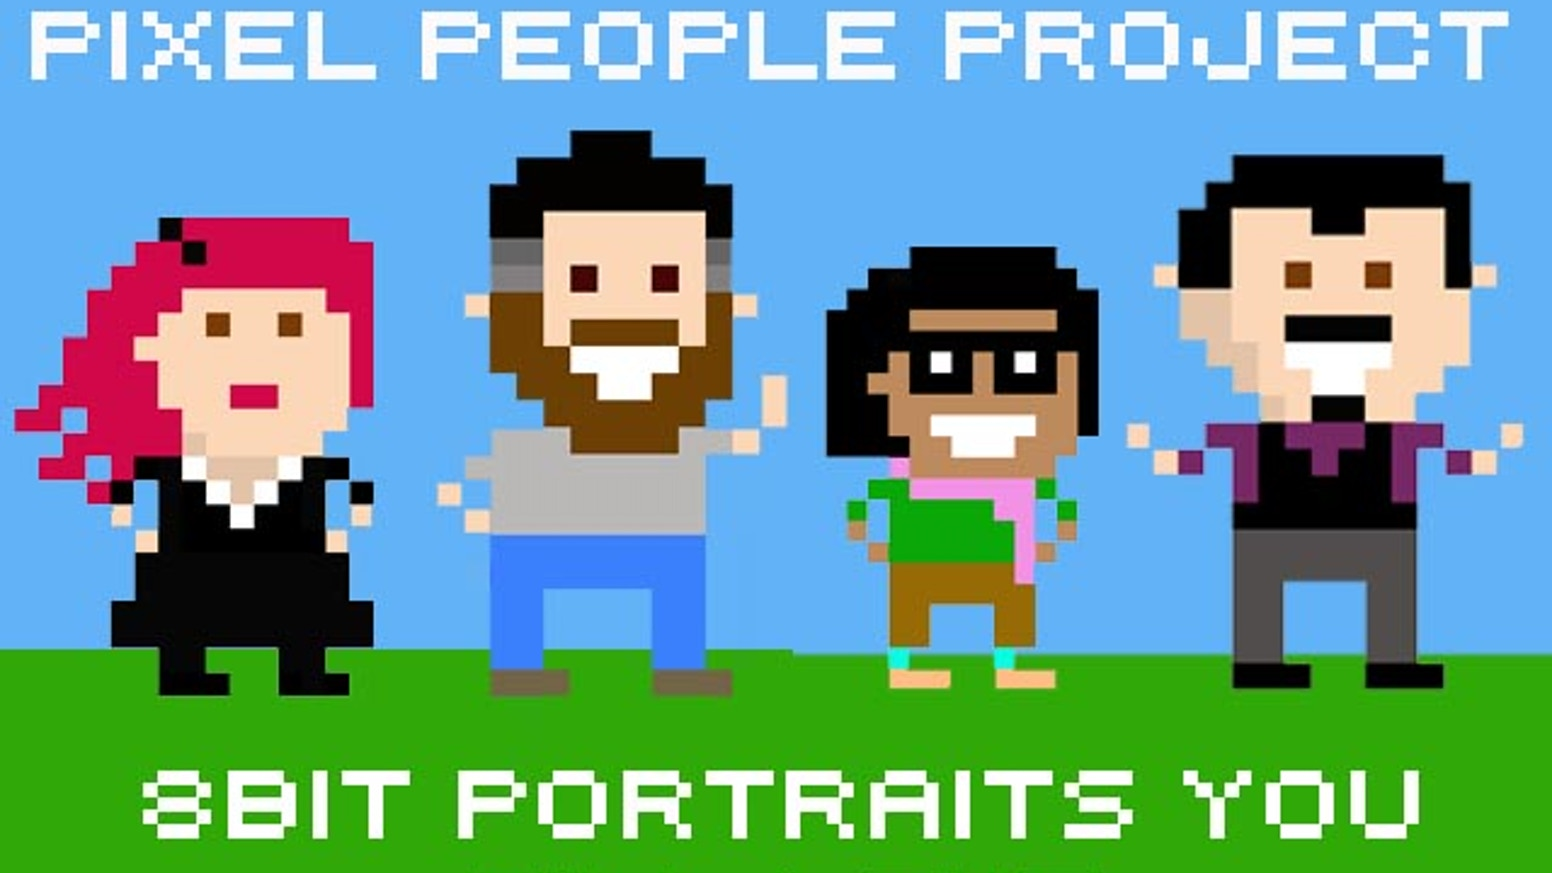 I wanted to spread the pixel love and produce a portrait for one lovely person from around the world each day for a year. Cool huh? 166 backers helped me do that. People of the internet are rad.